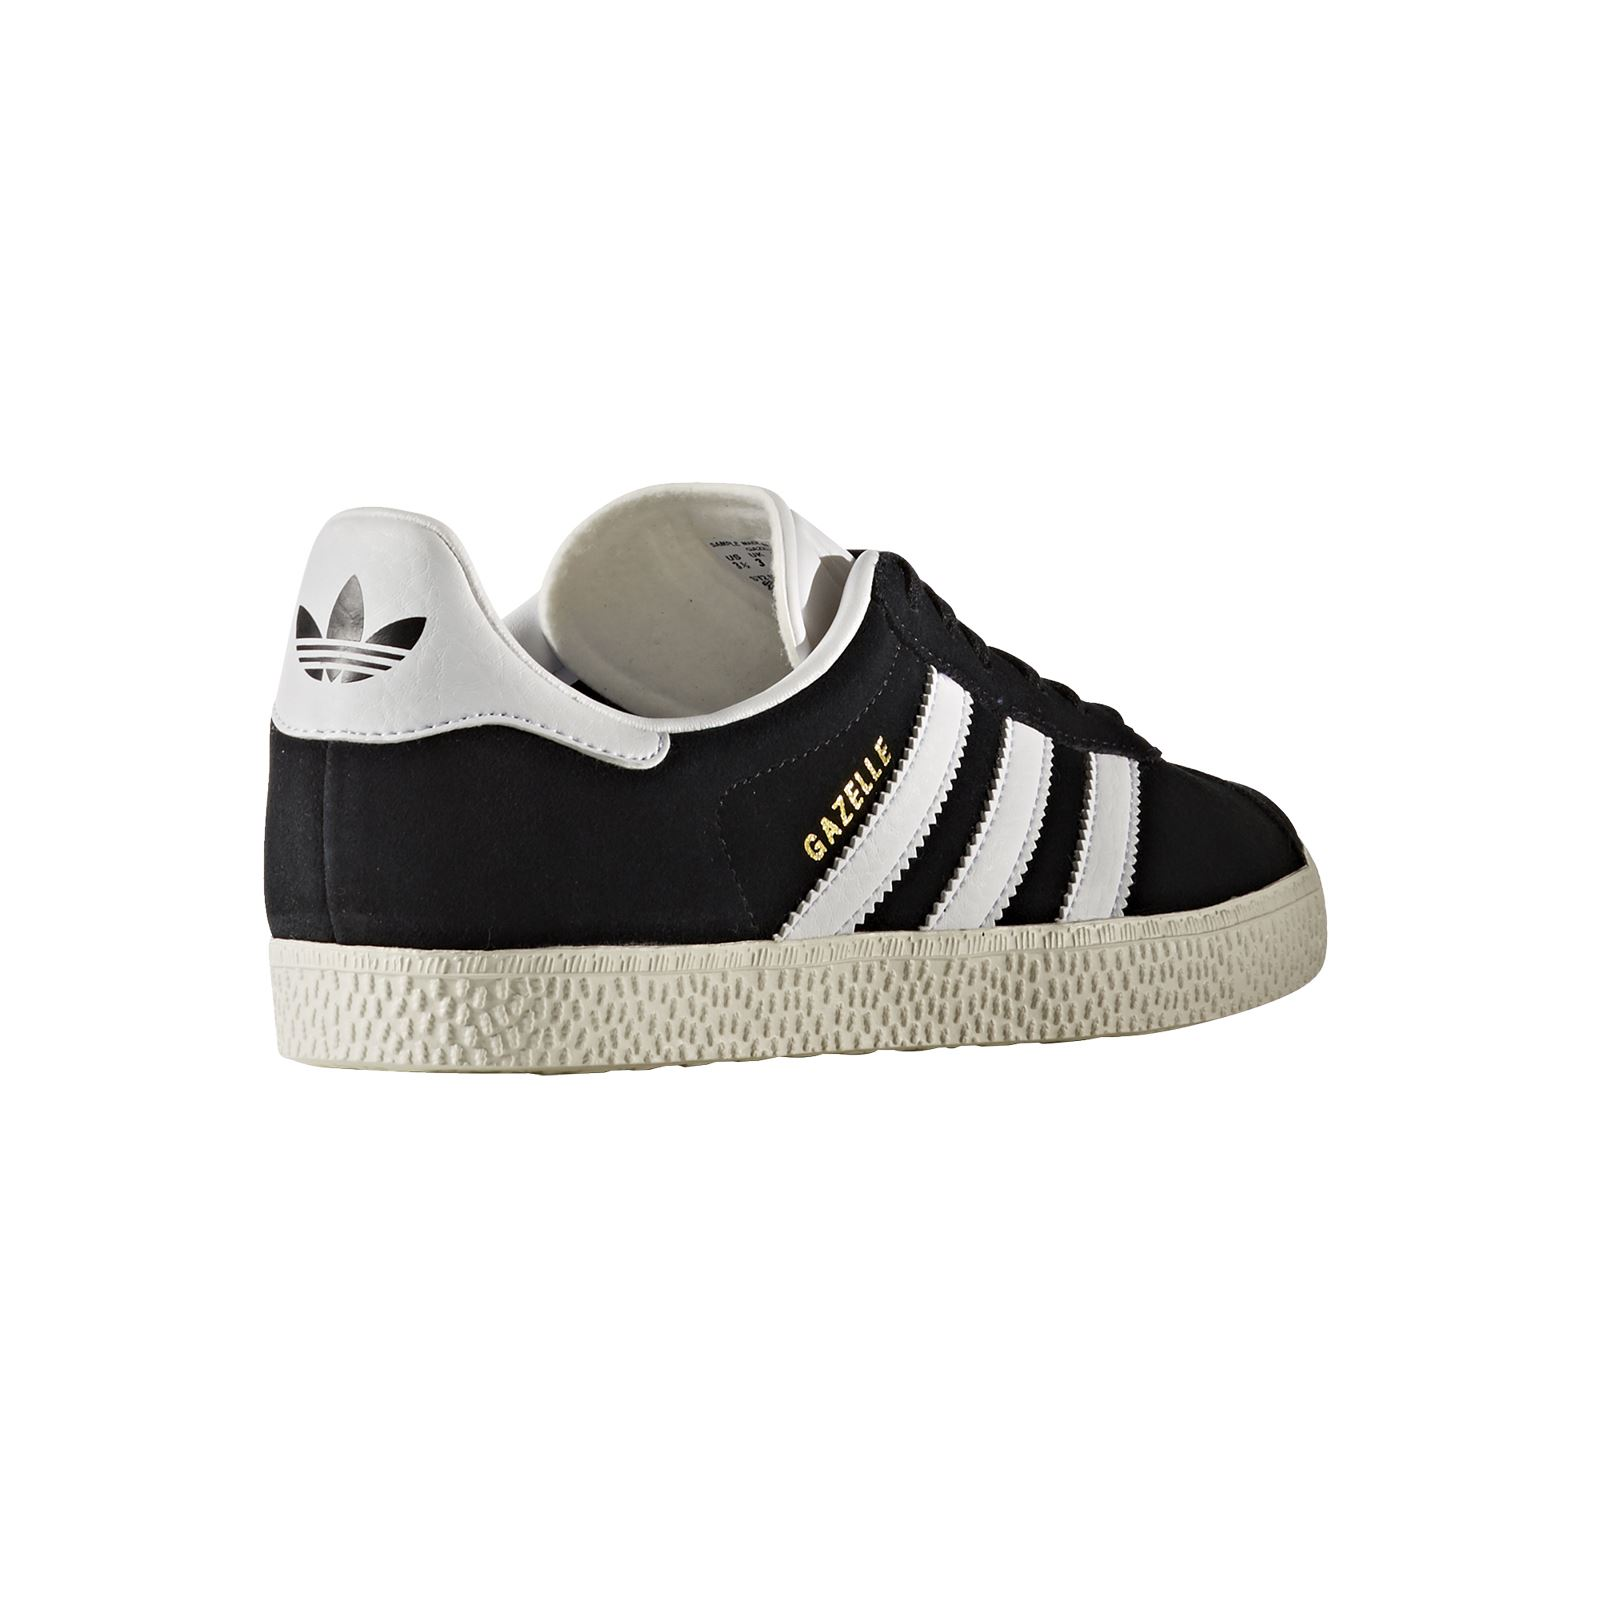 the best attitude 4fba4 79f2b cheap adidas nmd size 40 golf shoes women